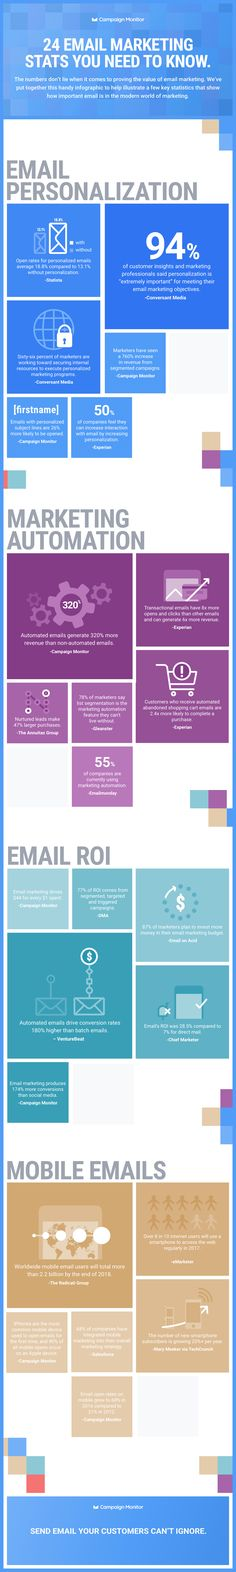 24 Email Marketing Stats You Need to Know - Infographic